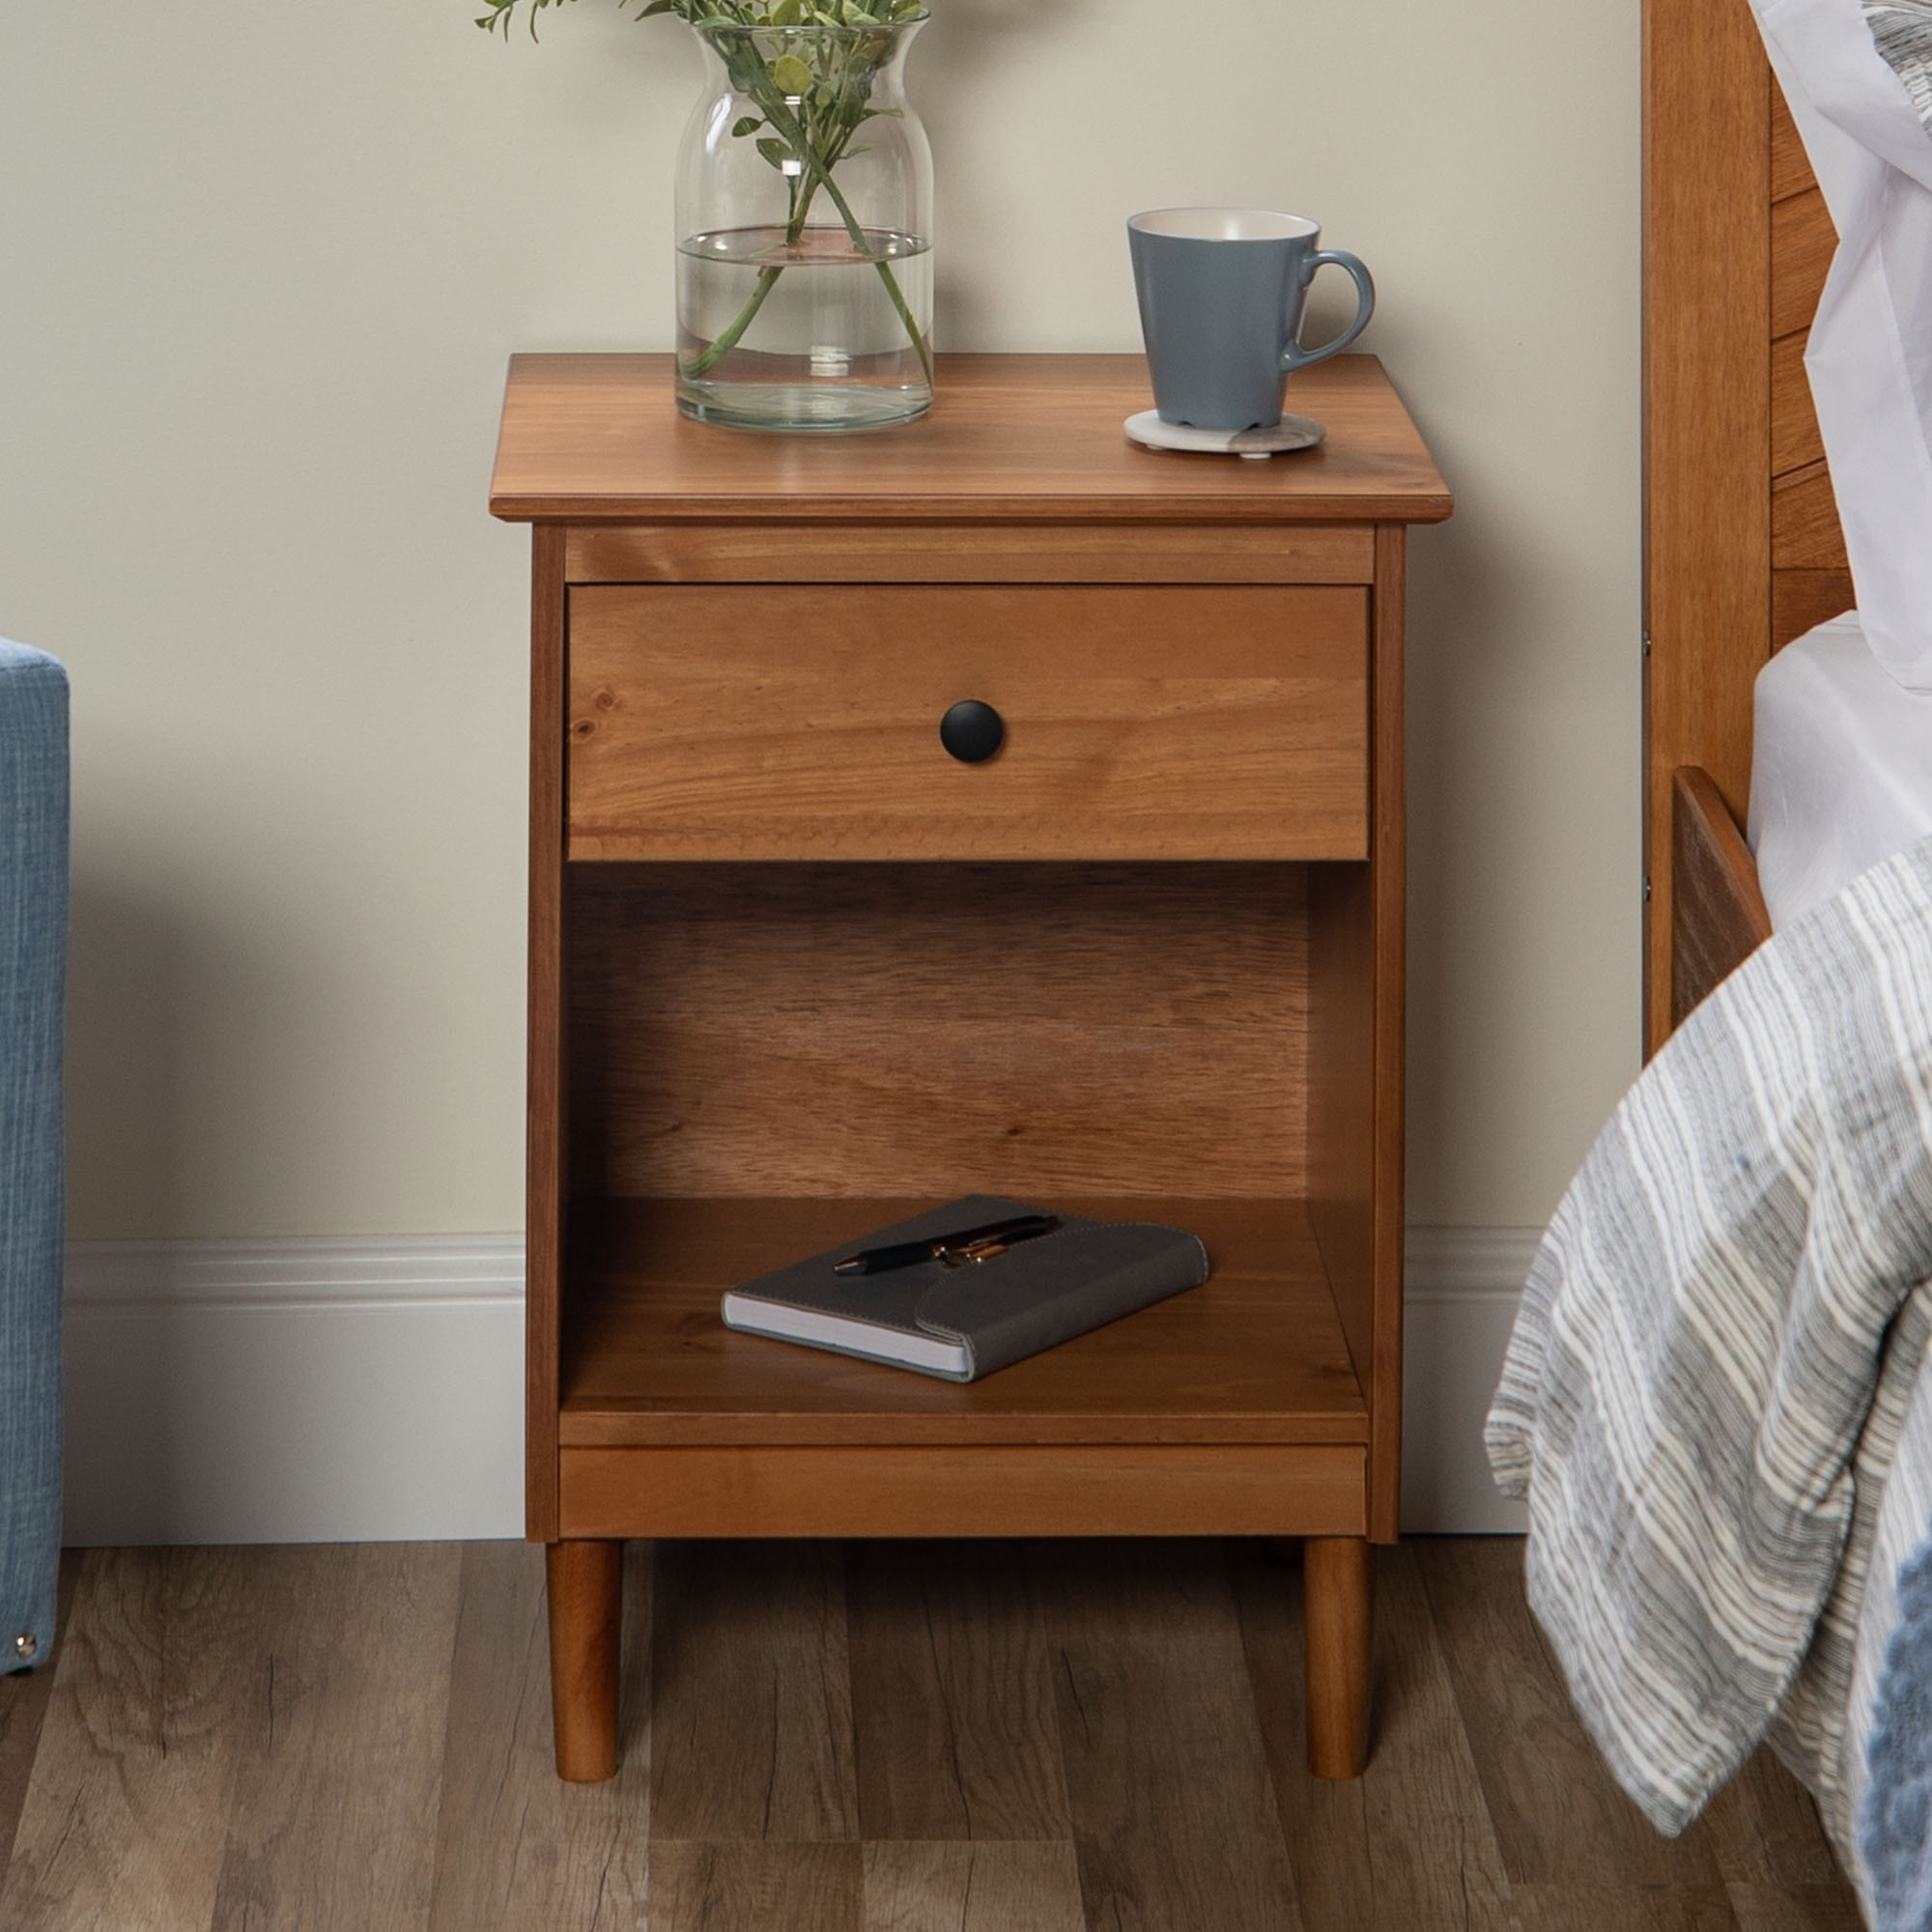 Manor Park Classic Mid-Century Modern 1-Drawer Solid Wood Nightstand - Caramel